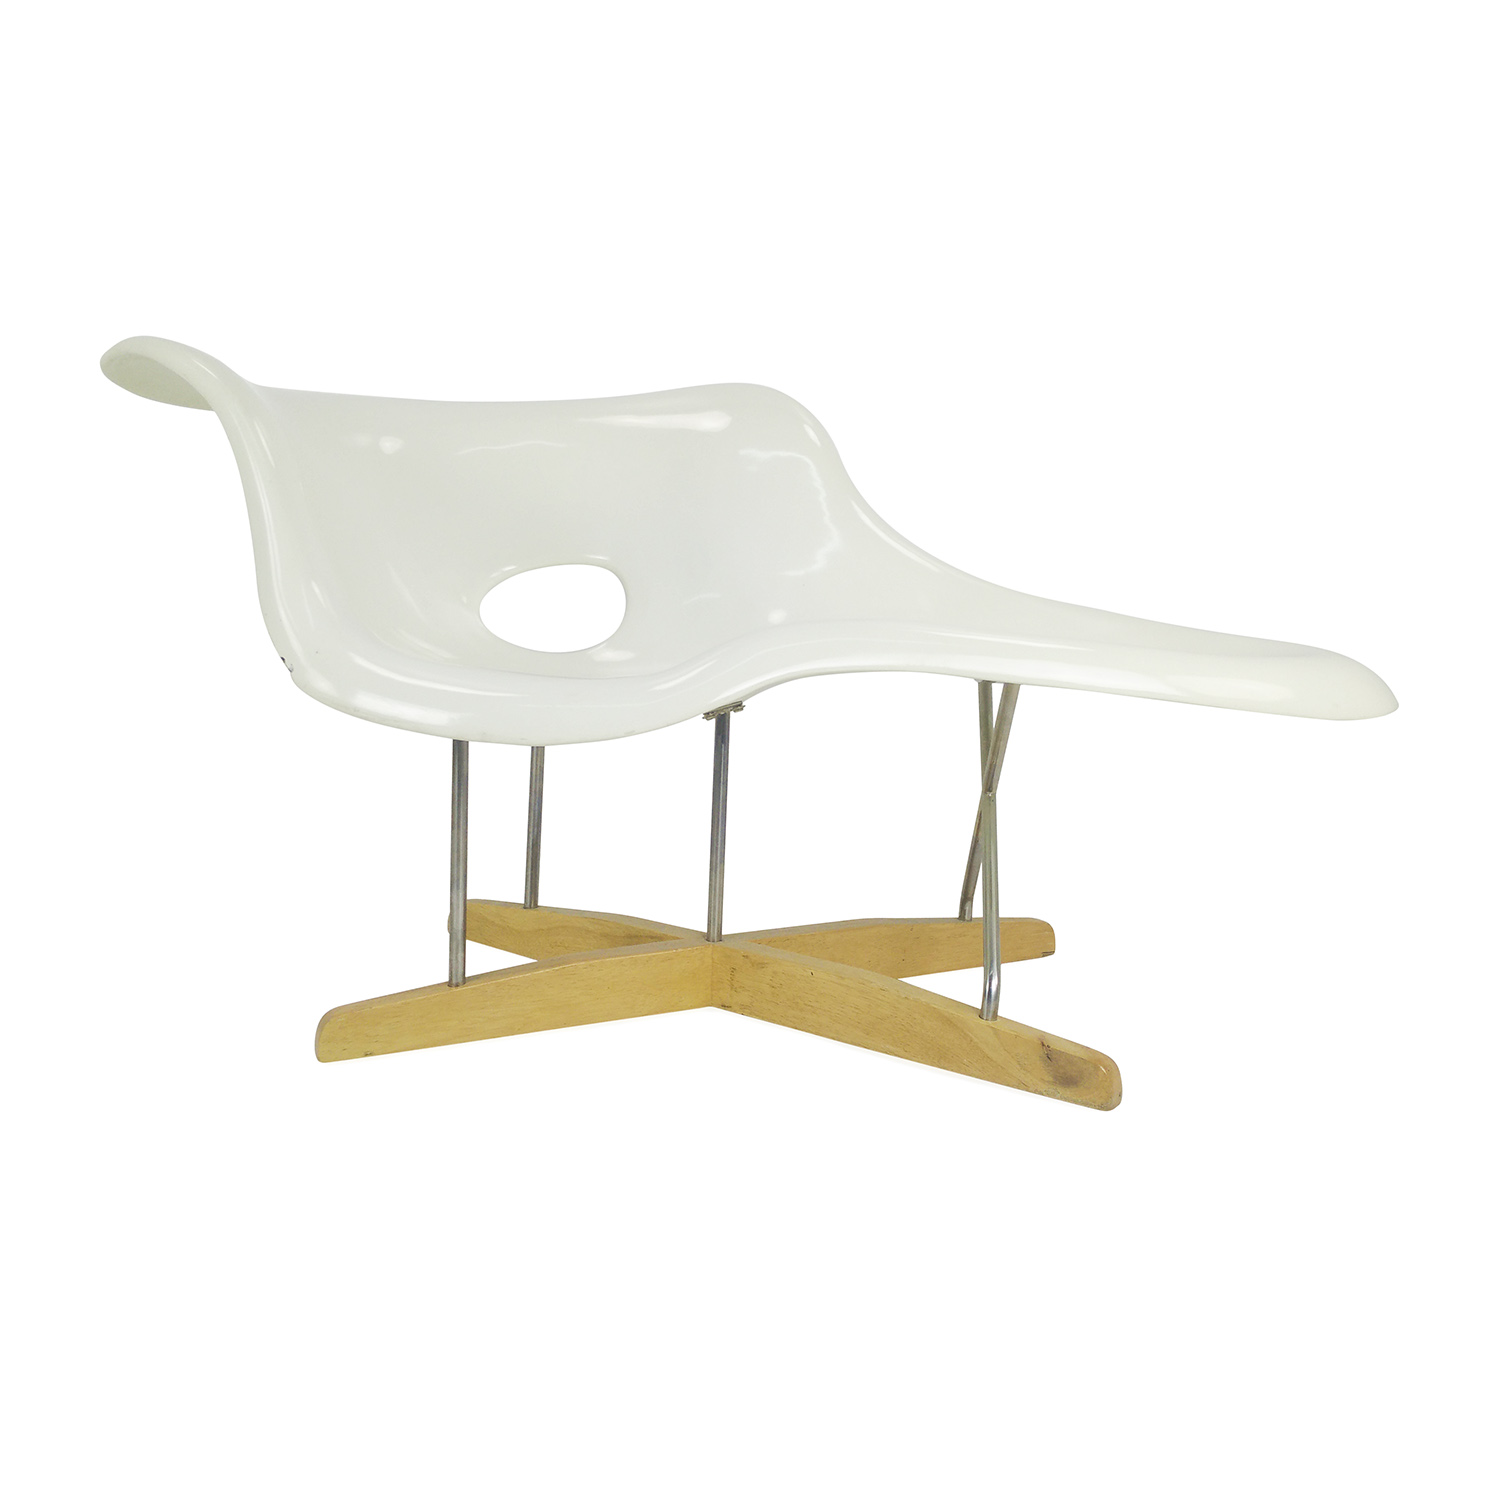 shop Eames Replica of La Chaise La Chaise Replica Lounge Chair online